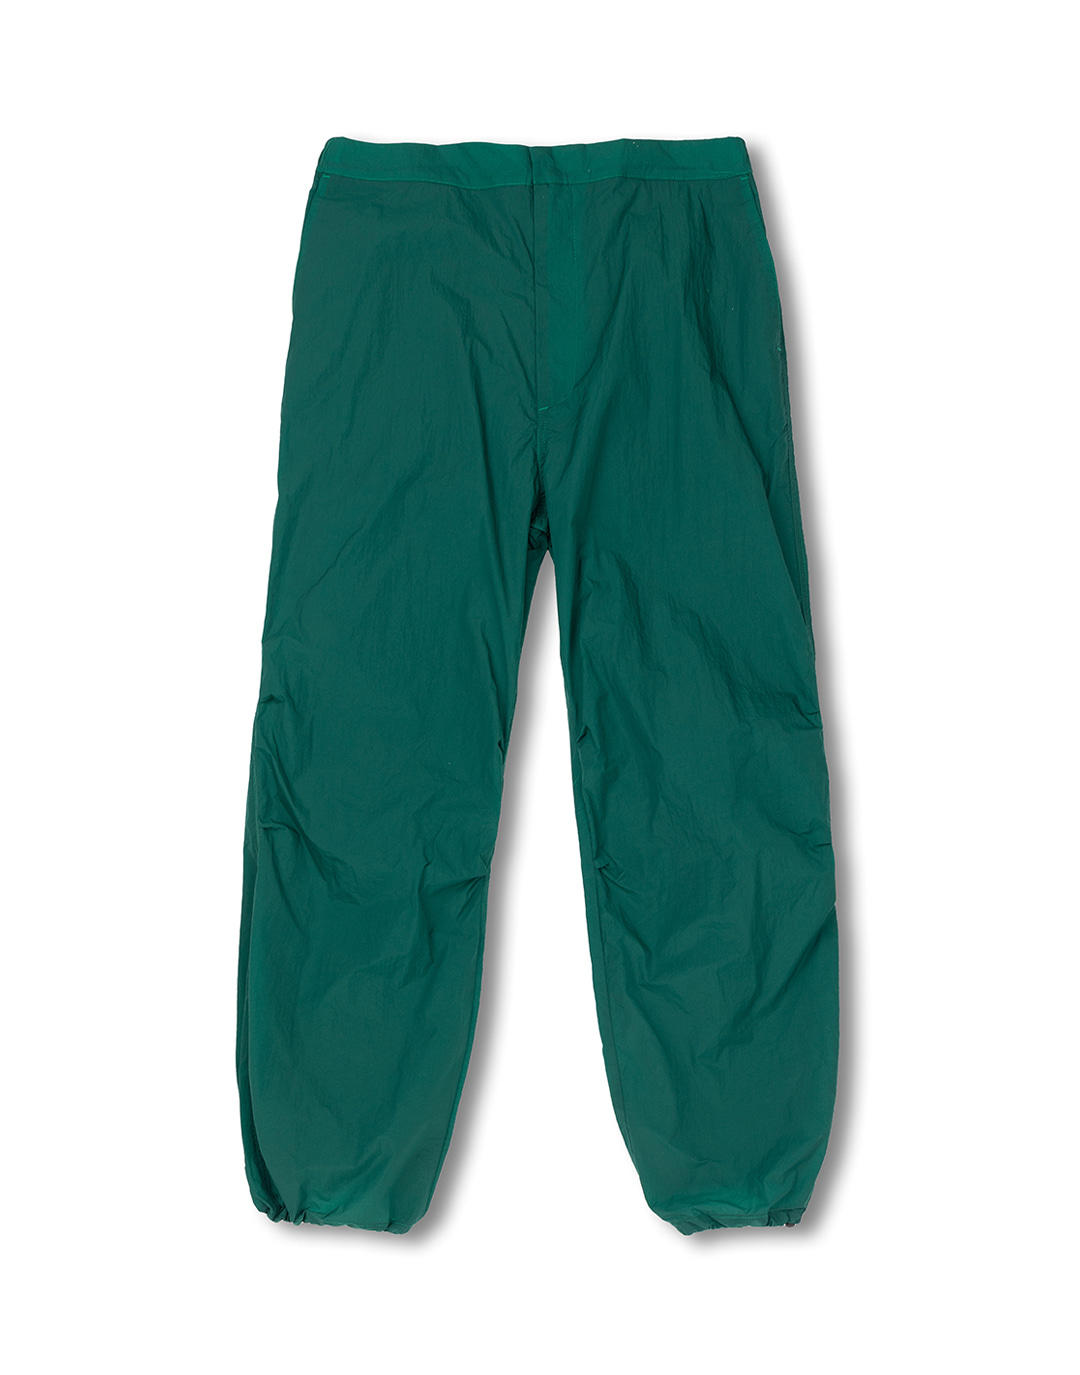 Green nylon pants